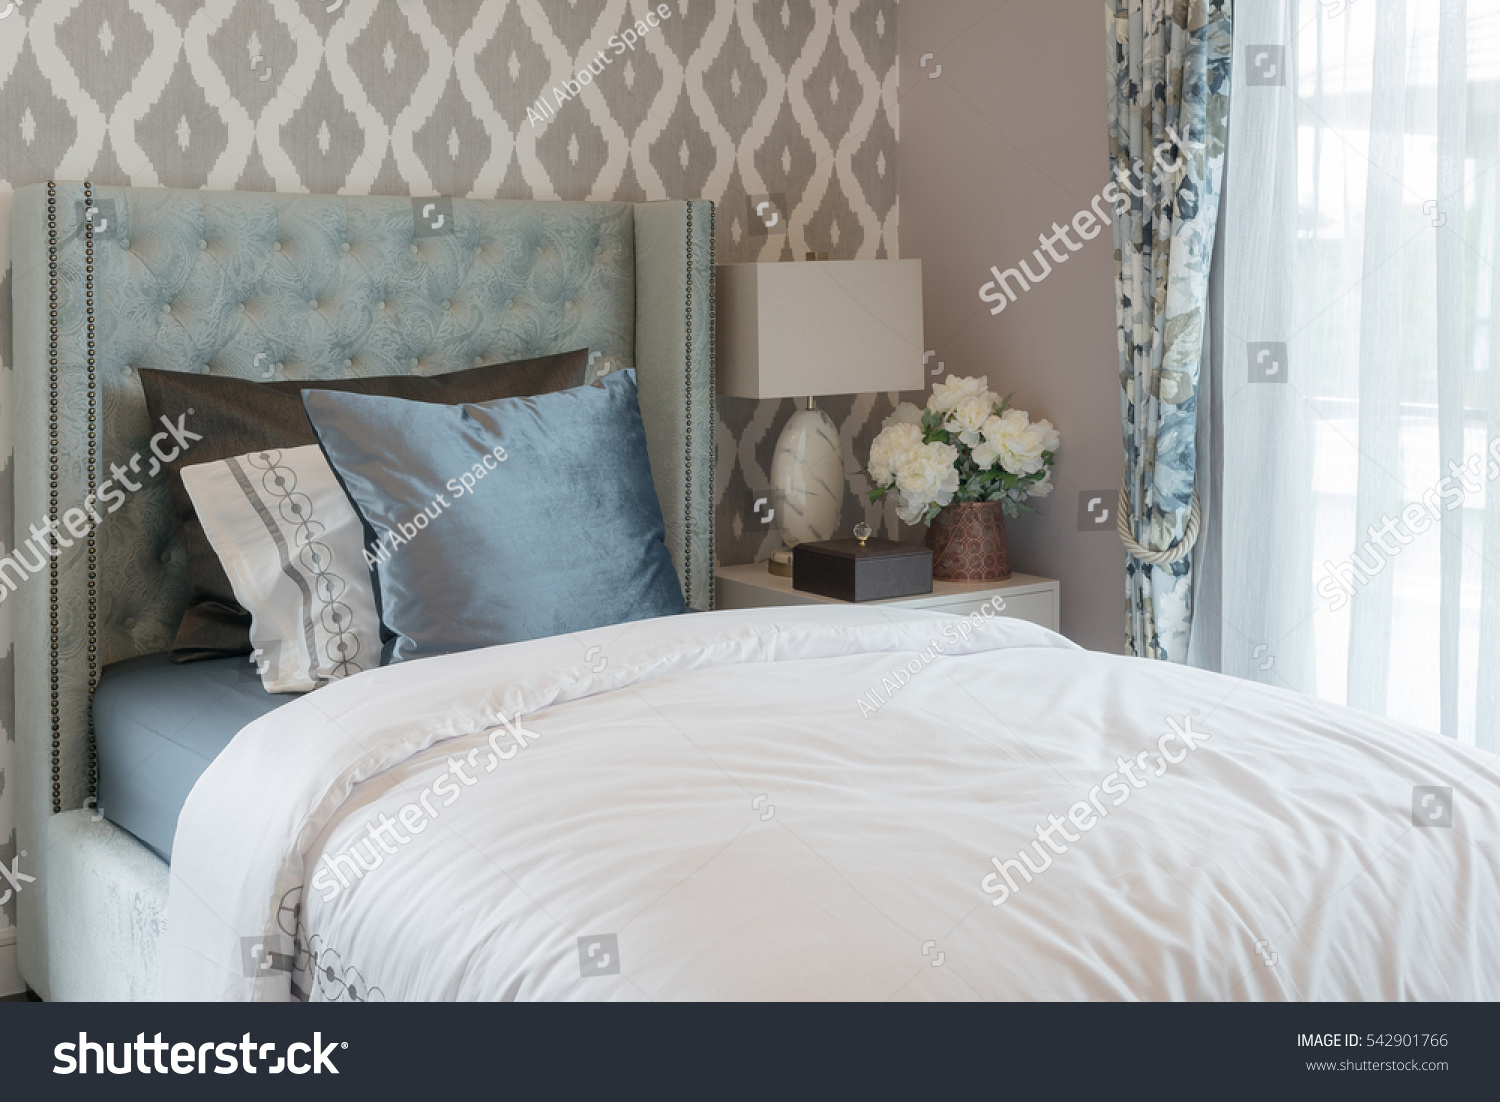 Luxury bedroom classic single bed set stock photo 542901766 shutterstock - Beautiful snooze bedroom suites packing comfort in style ...